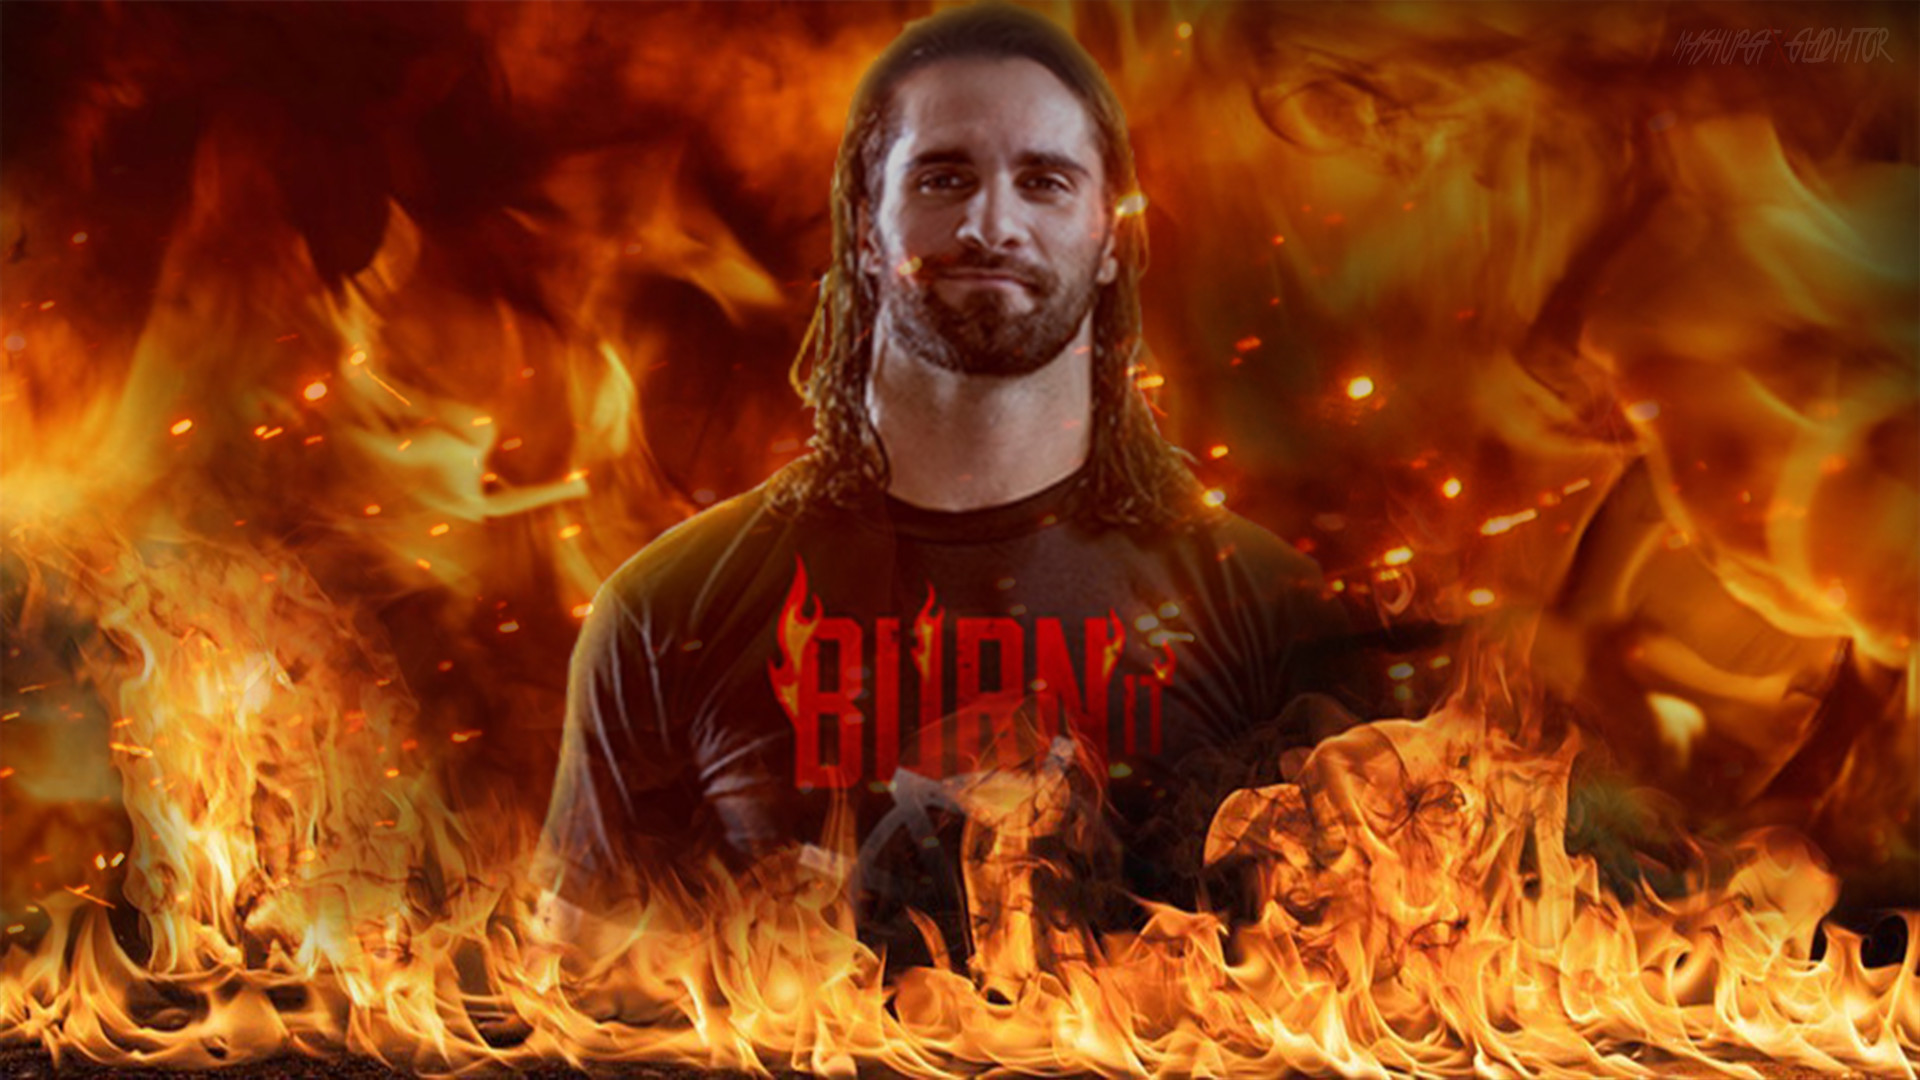 seth rollins wallpapers 84 images